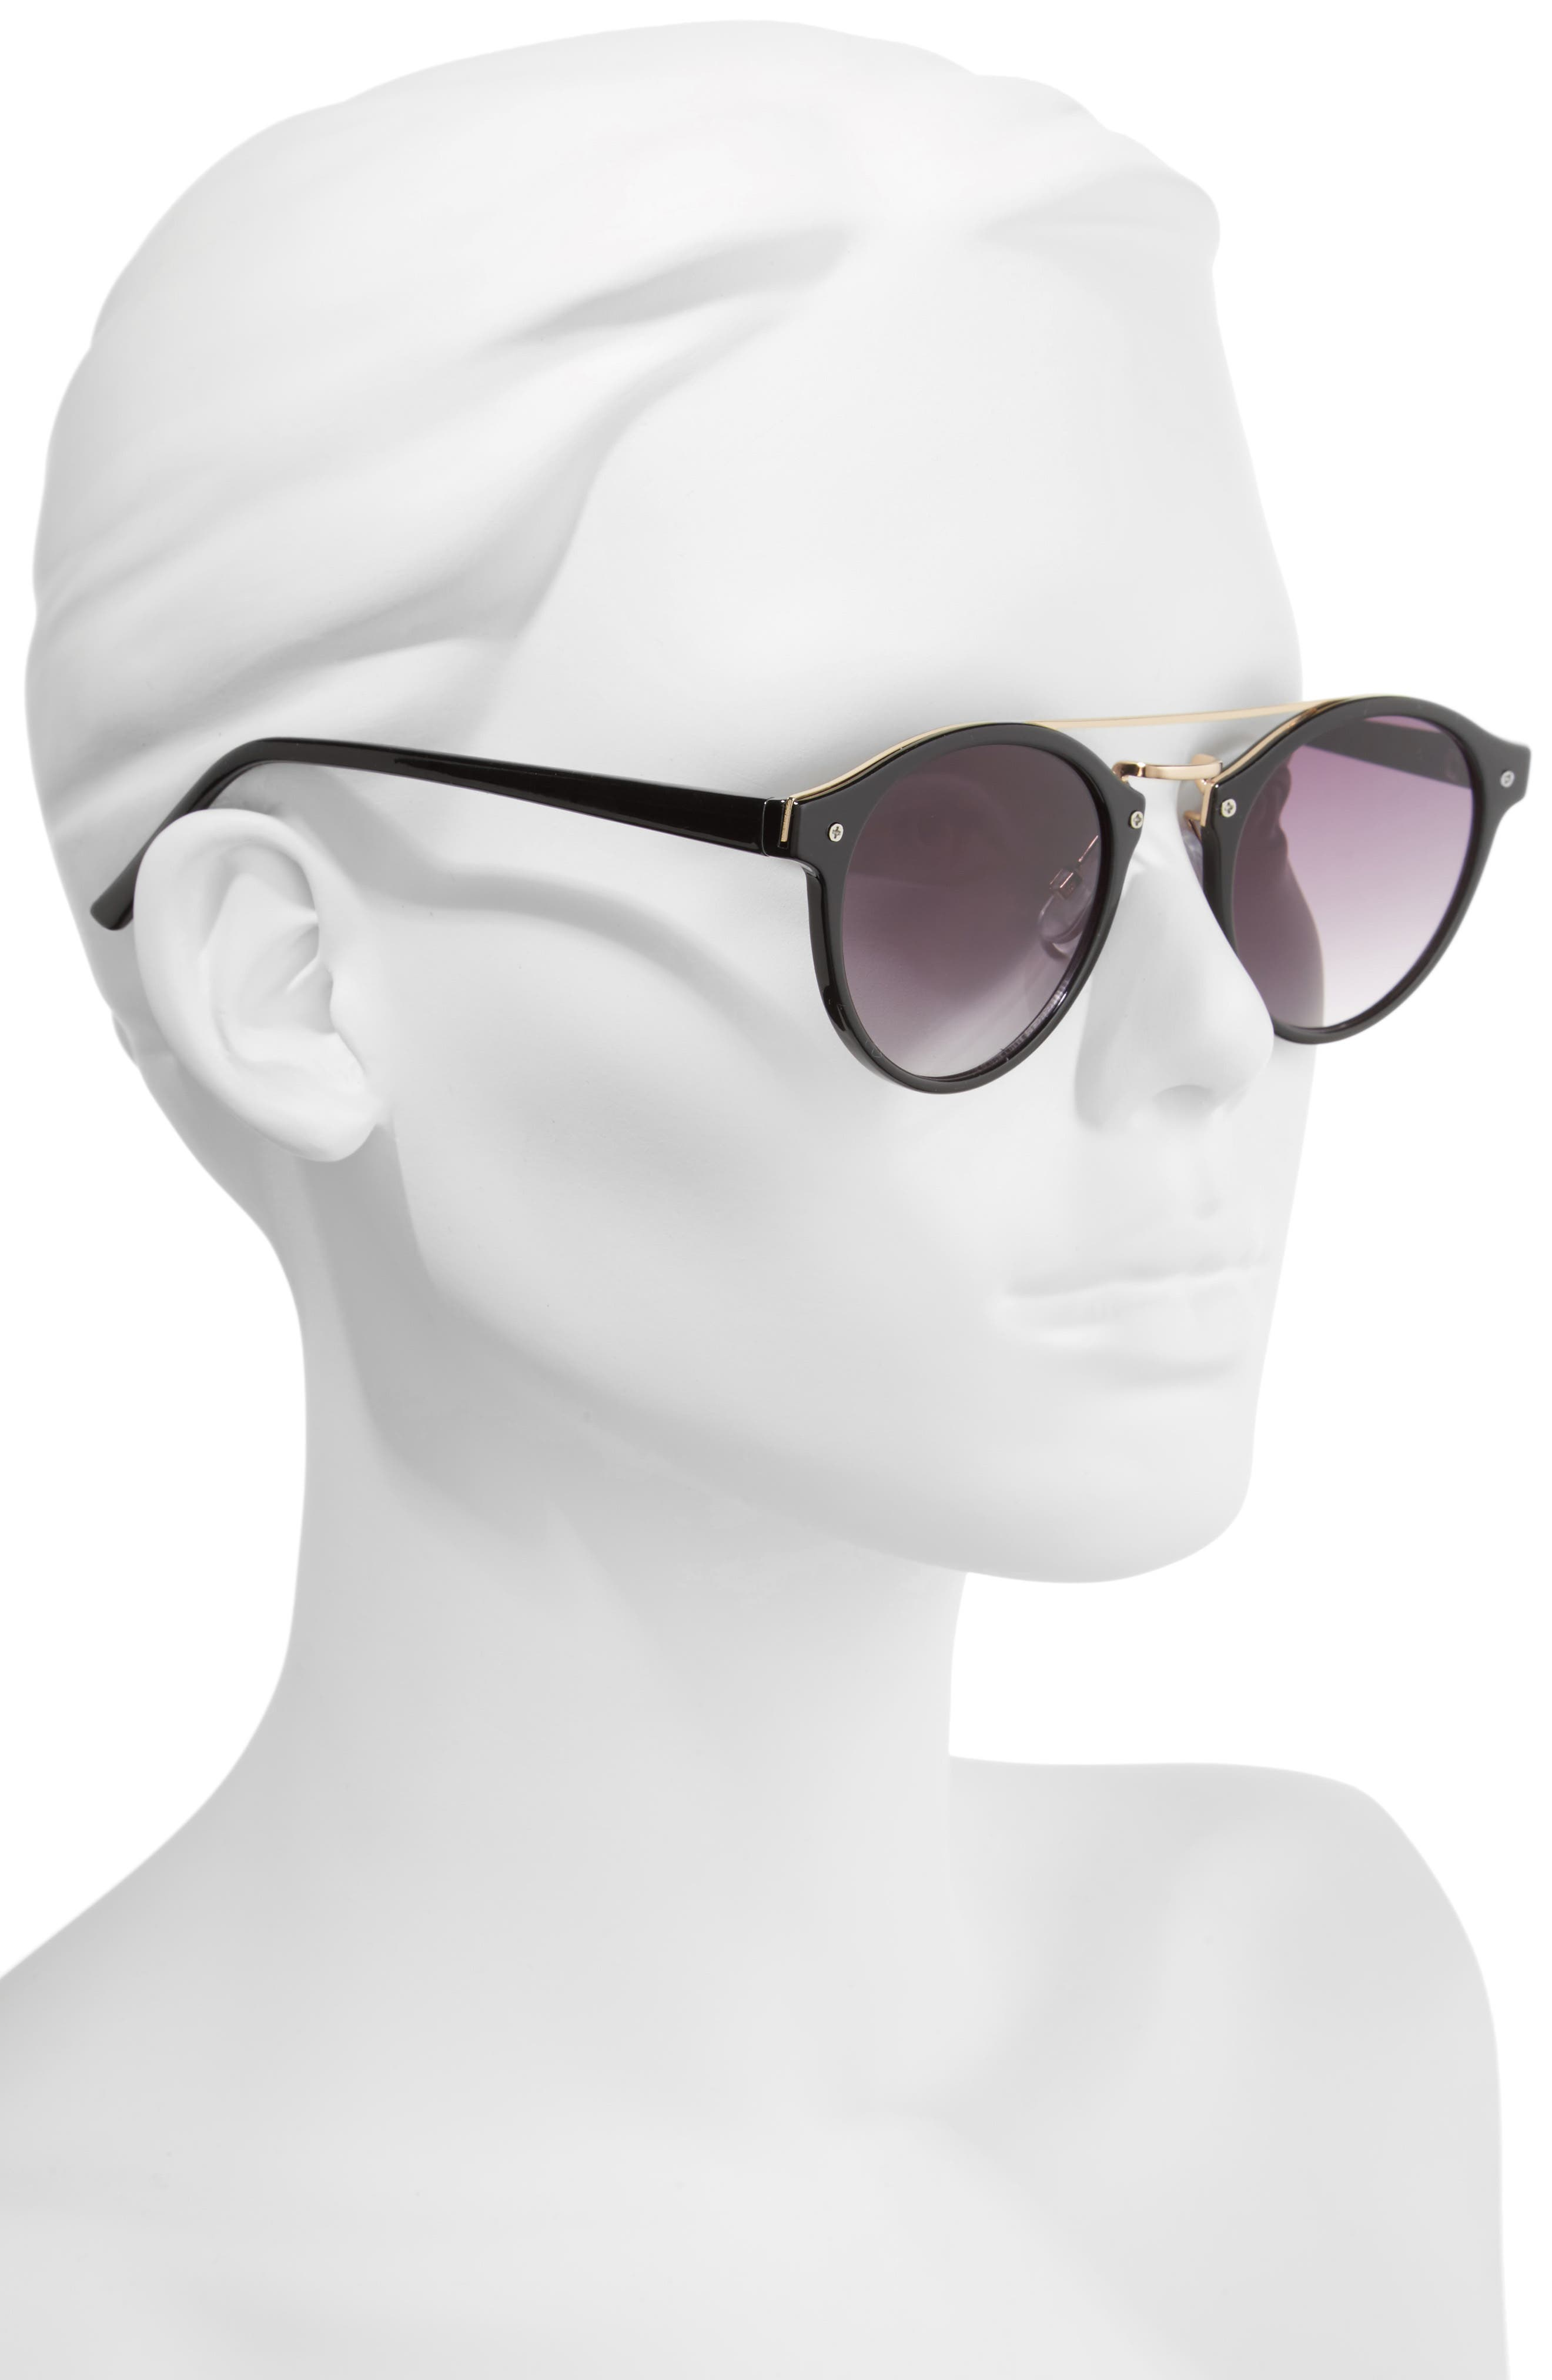 45mm Round Sunglasses,                             Alternate thumbnail 2, color,                             001